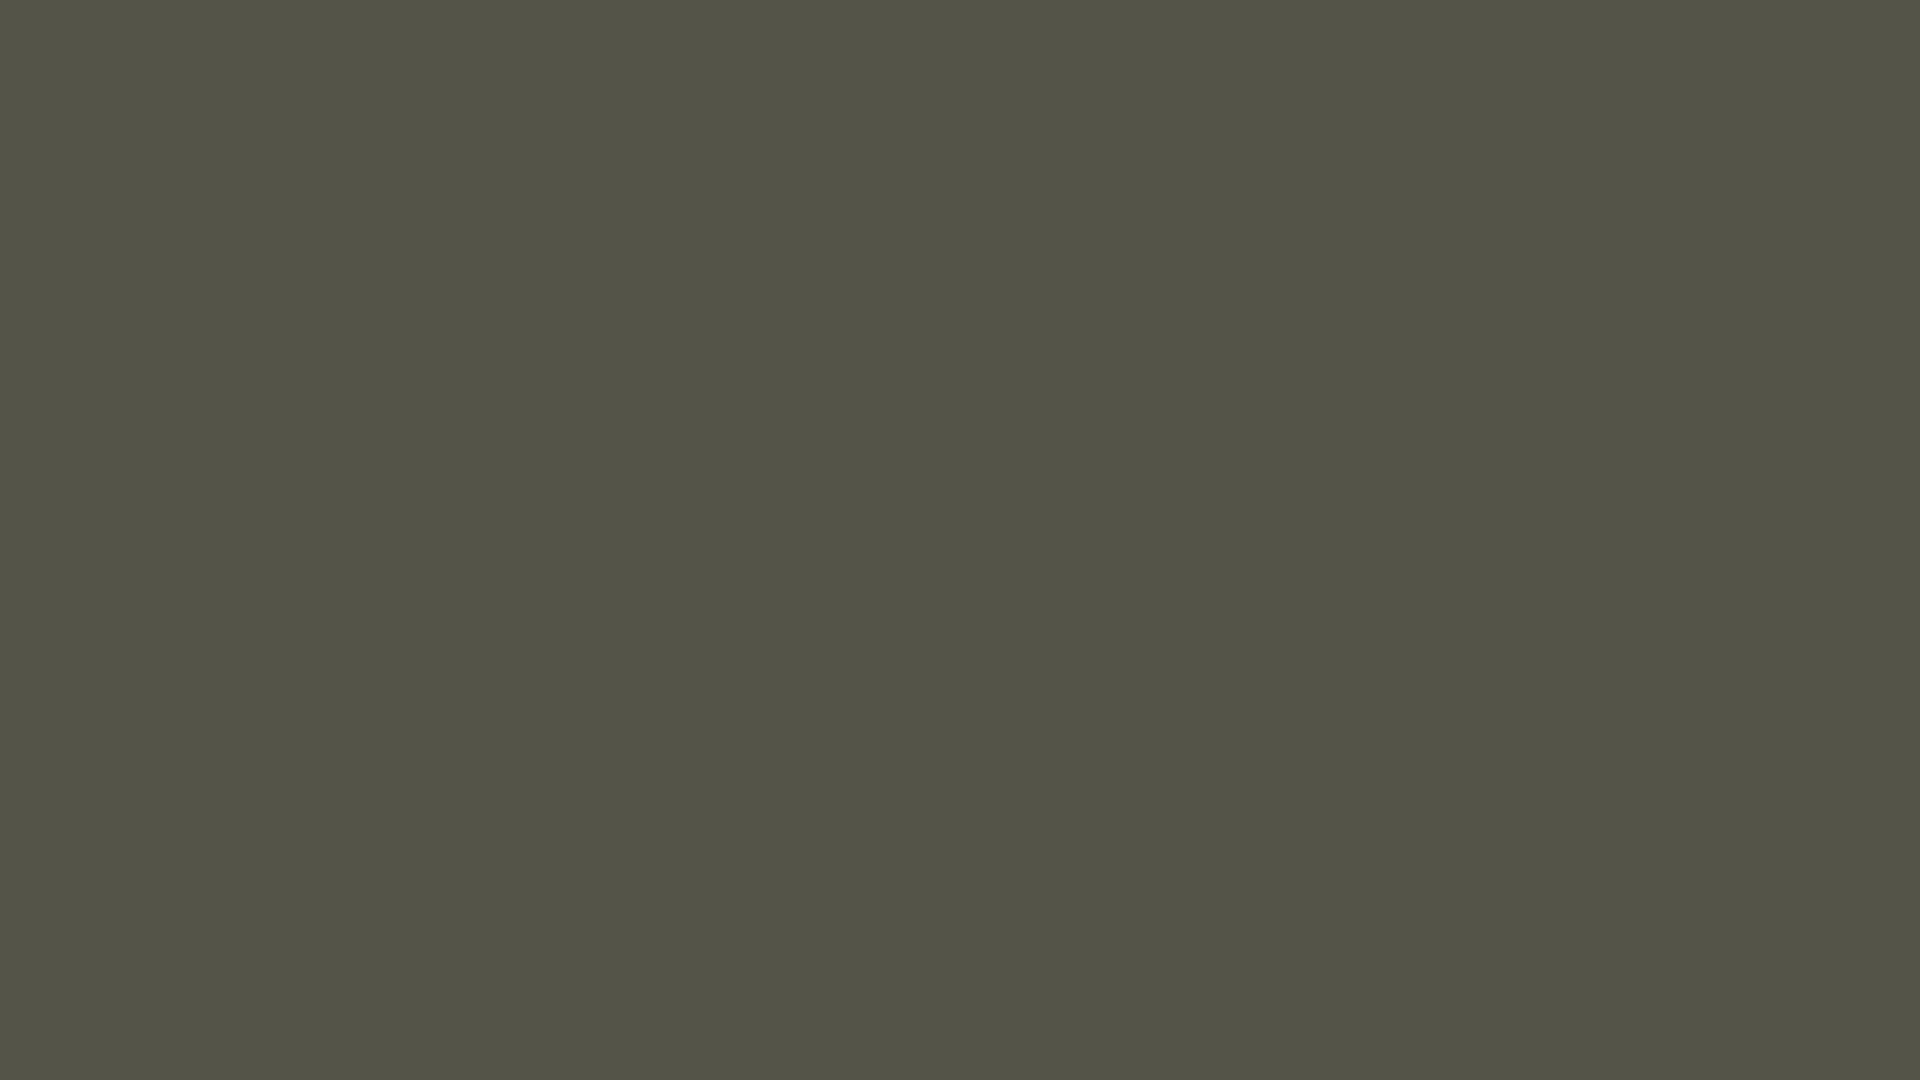 MDF PAINTED RAL 7023 CONCRETE GREY